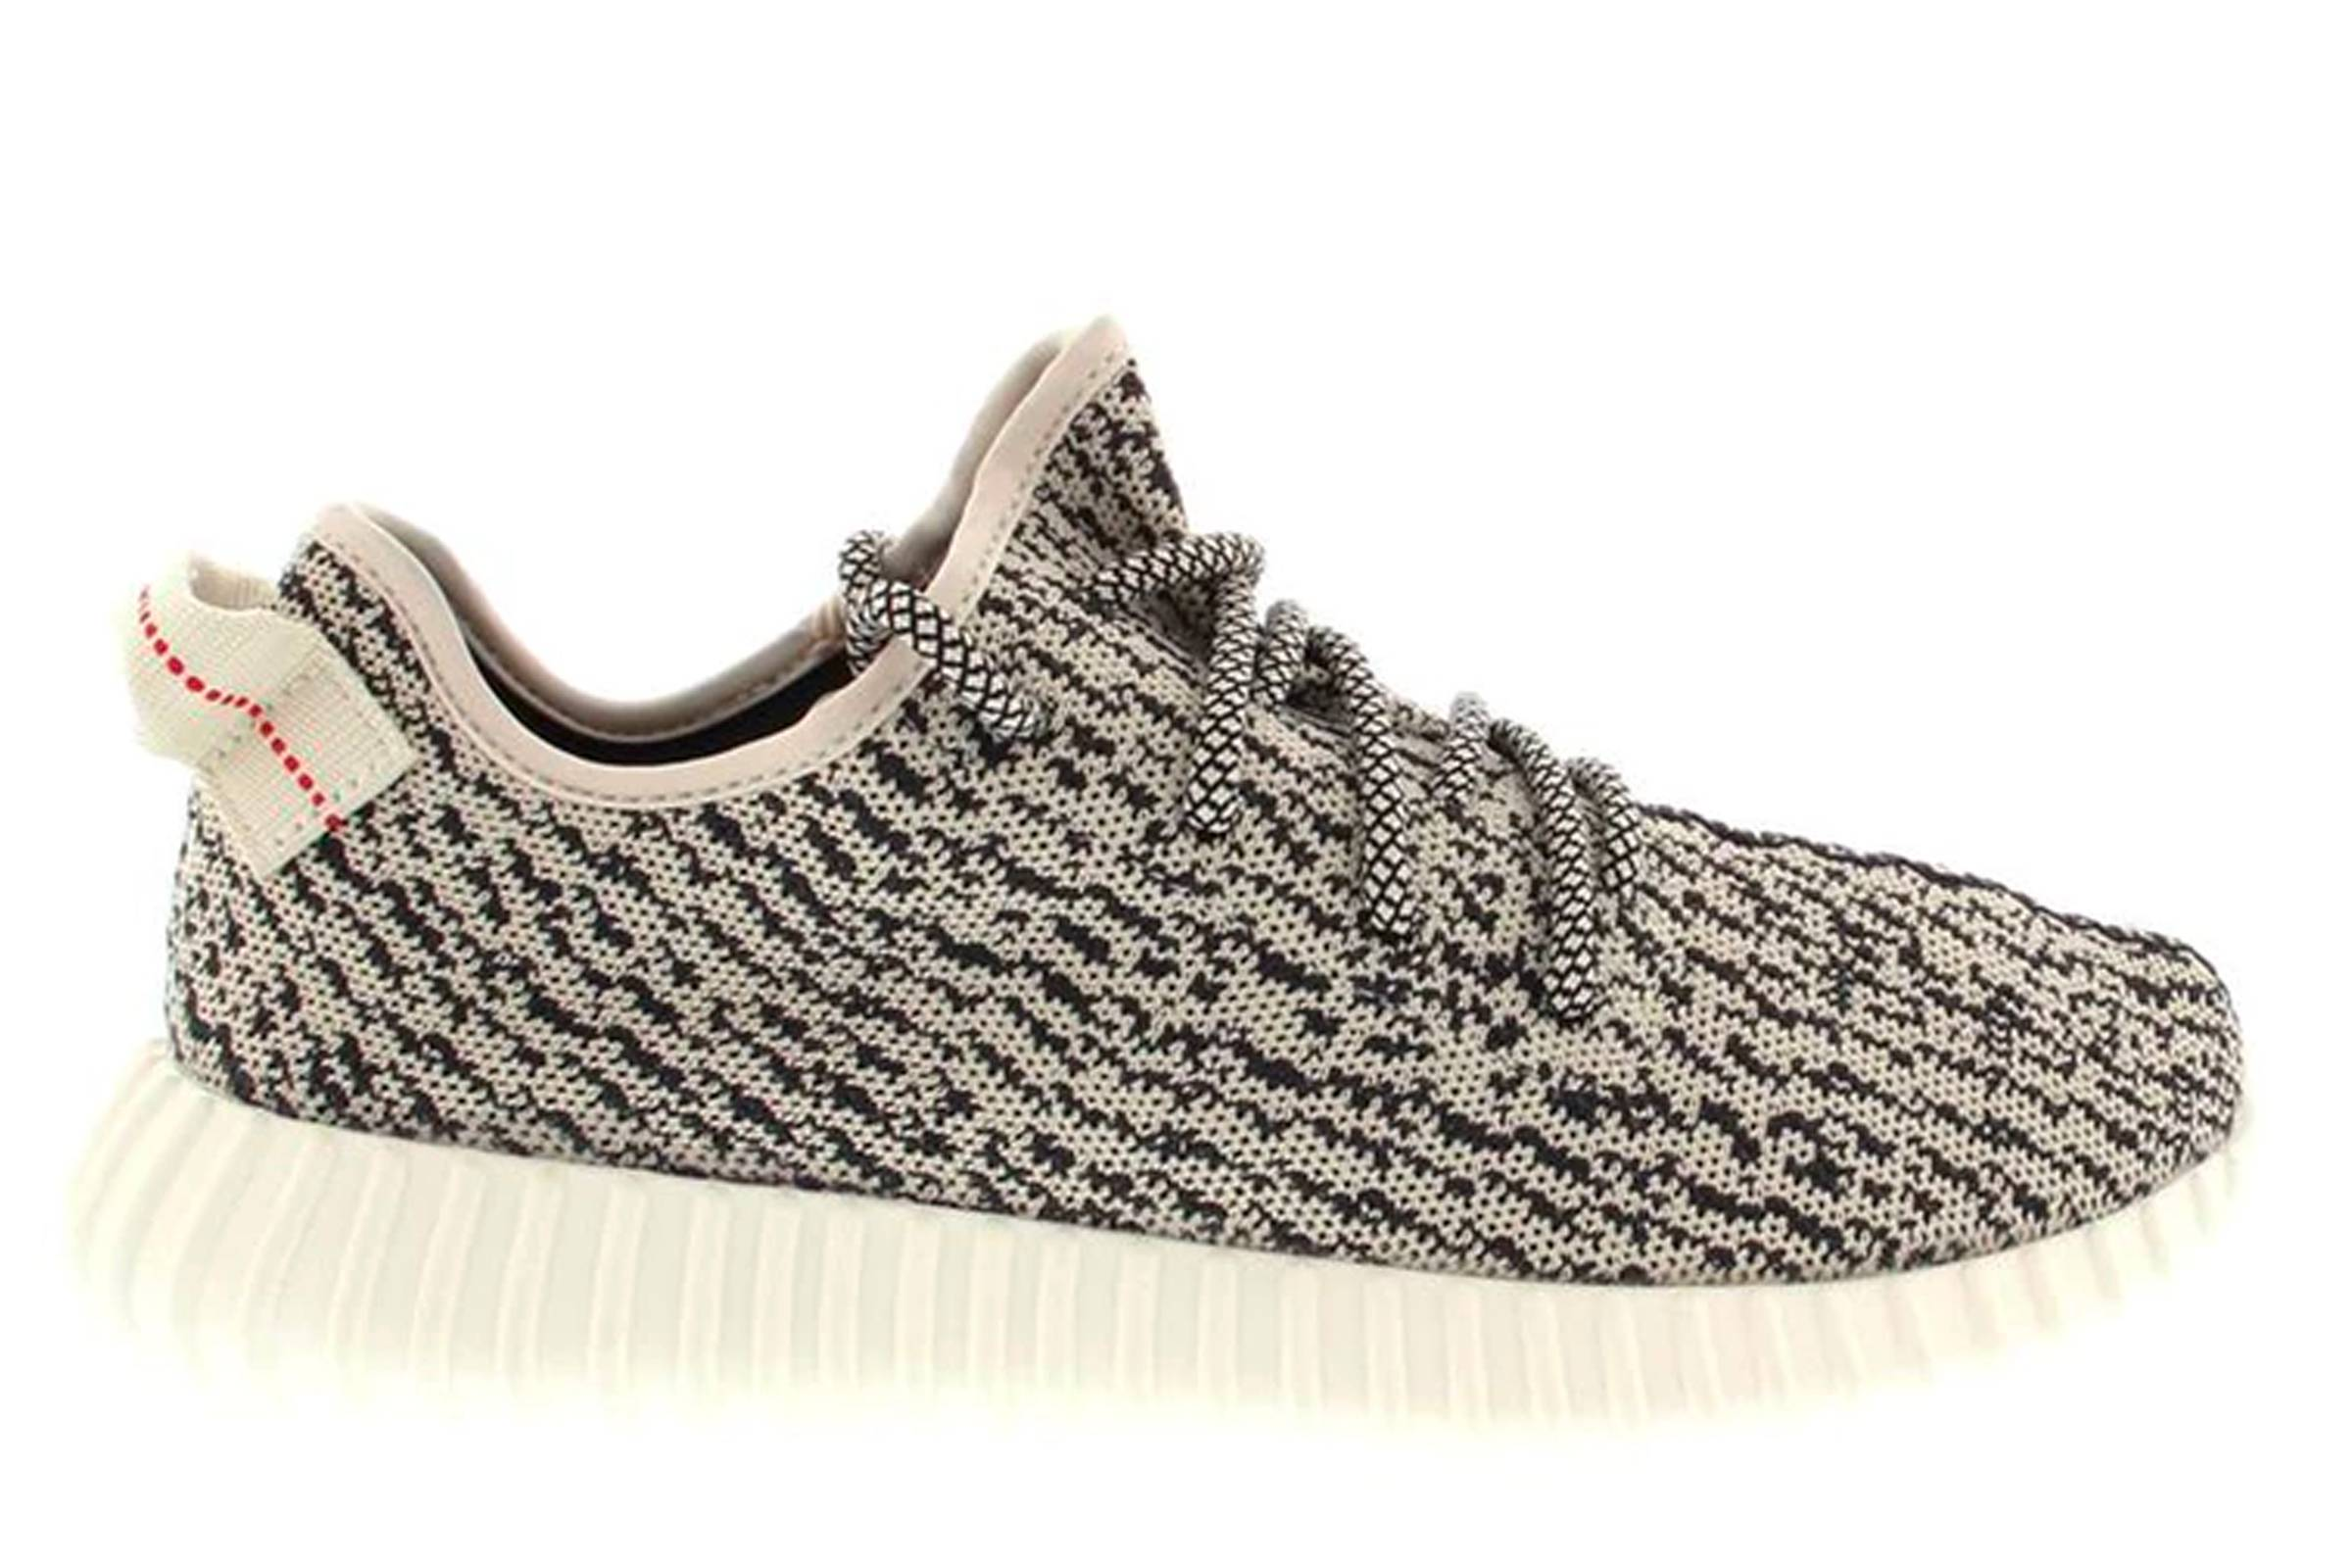 the best attitude 4f937 46096 adidas Yeezy Boost Turtledove (2015)